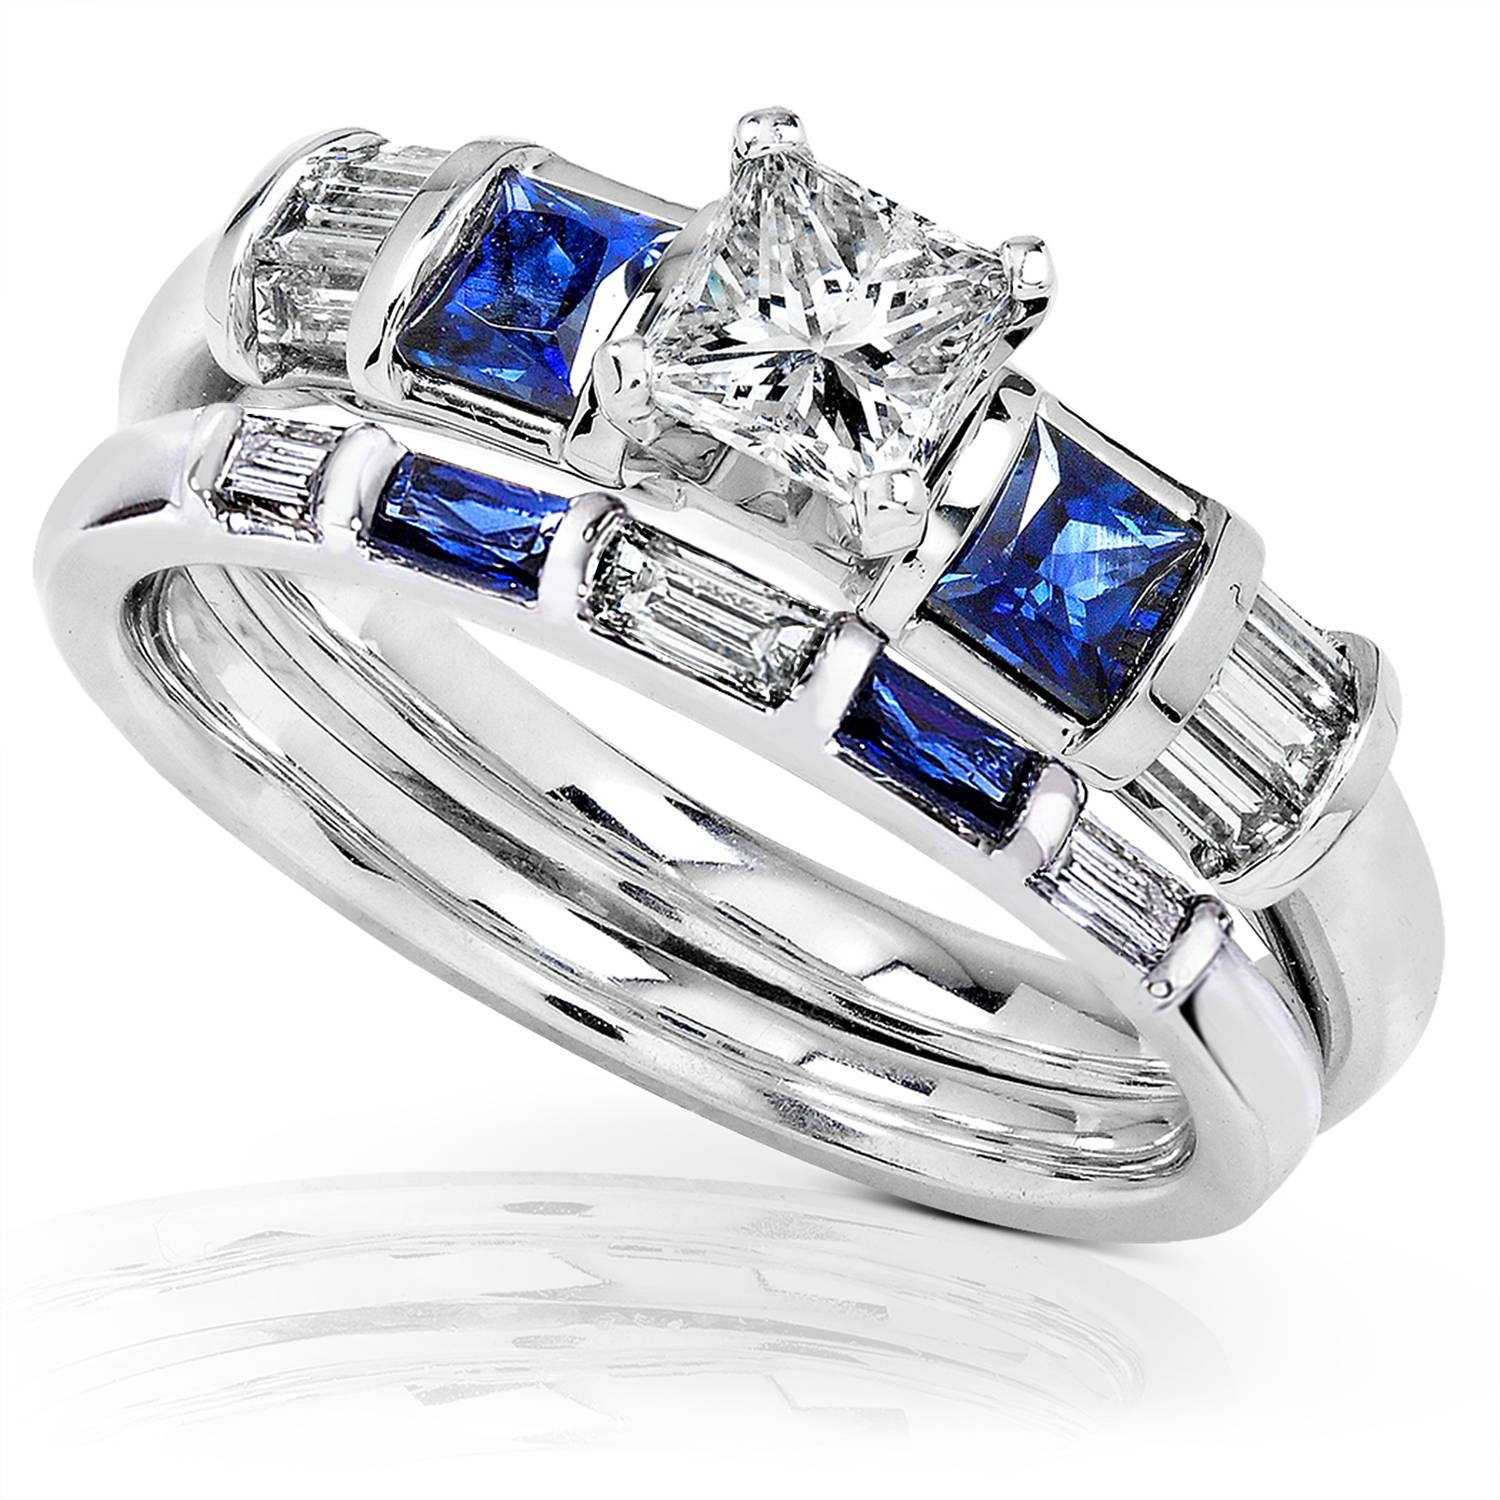 Blue Sapphire & Diamond Wedding Rings Set 1 Carat (Ctw) In 14K Inside Blue Diamond Wedding Rings Sets (View 7 of 15)